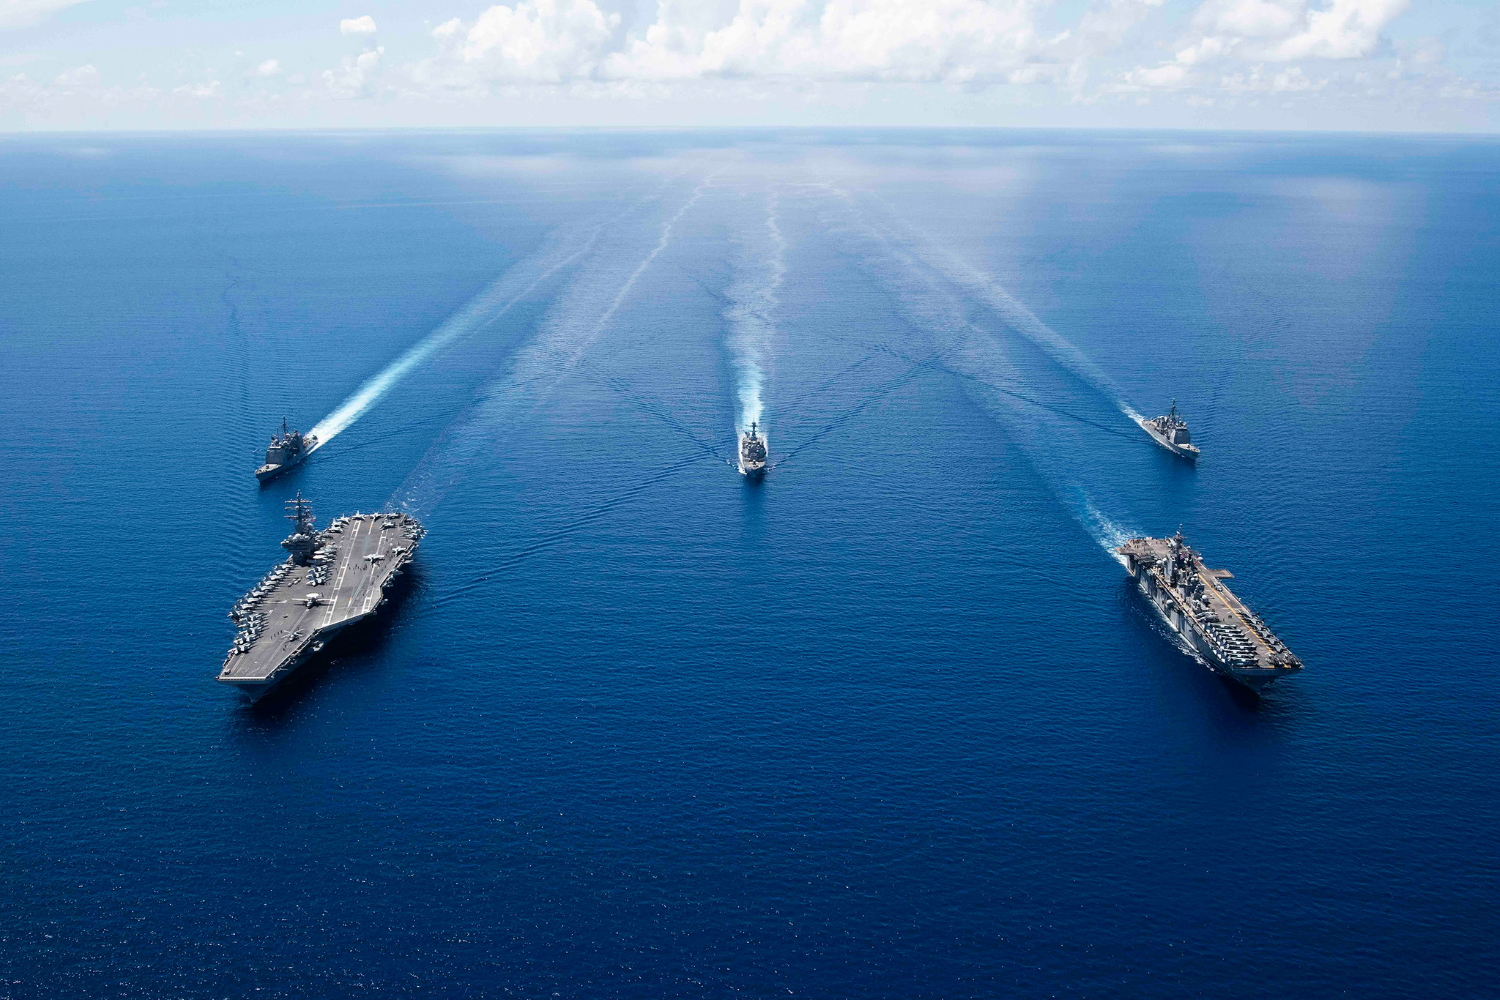 The aircraft carrier USS Ronald Reagan (CVN 76), left, and the amphibious assault ship USS Boxer (LHD 6) and ships from the Ronald Reagan Carrier Strike Group and the Boxer Amphibious Ready Group are underway in formation Oct. 6, 2019, in the South China Sea. (Mass Communication Specialist 2nd Class Erwin Jacob V. Miciano/Navy)